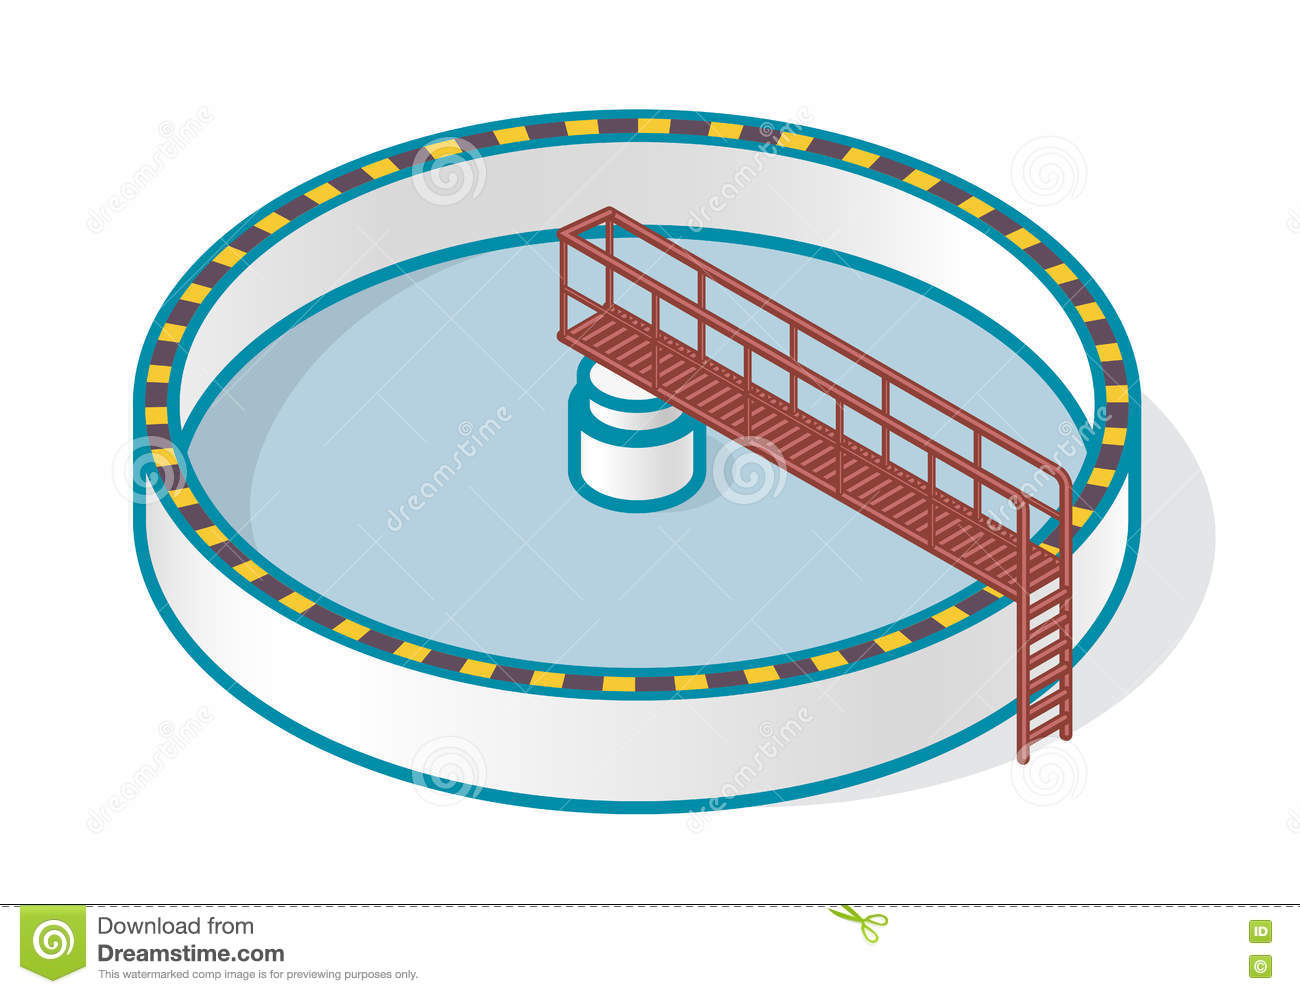 Pipe clipart wastewater treatment Wastewater Stylized clipart In Wastewater